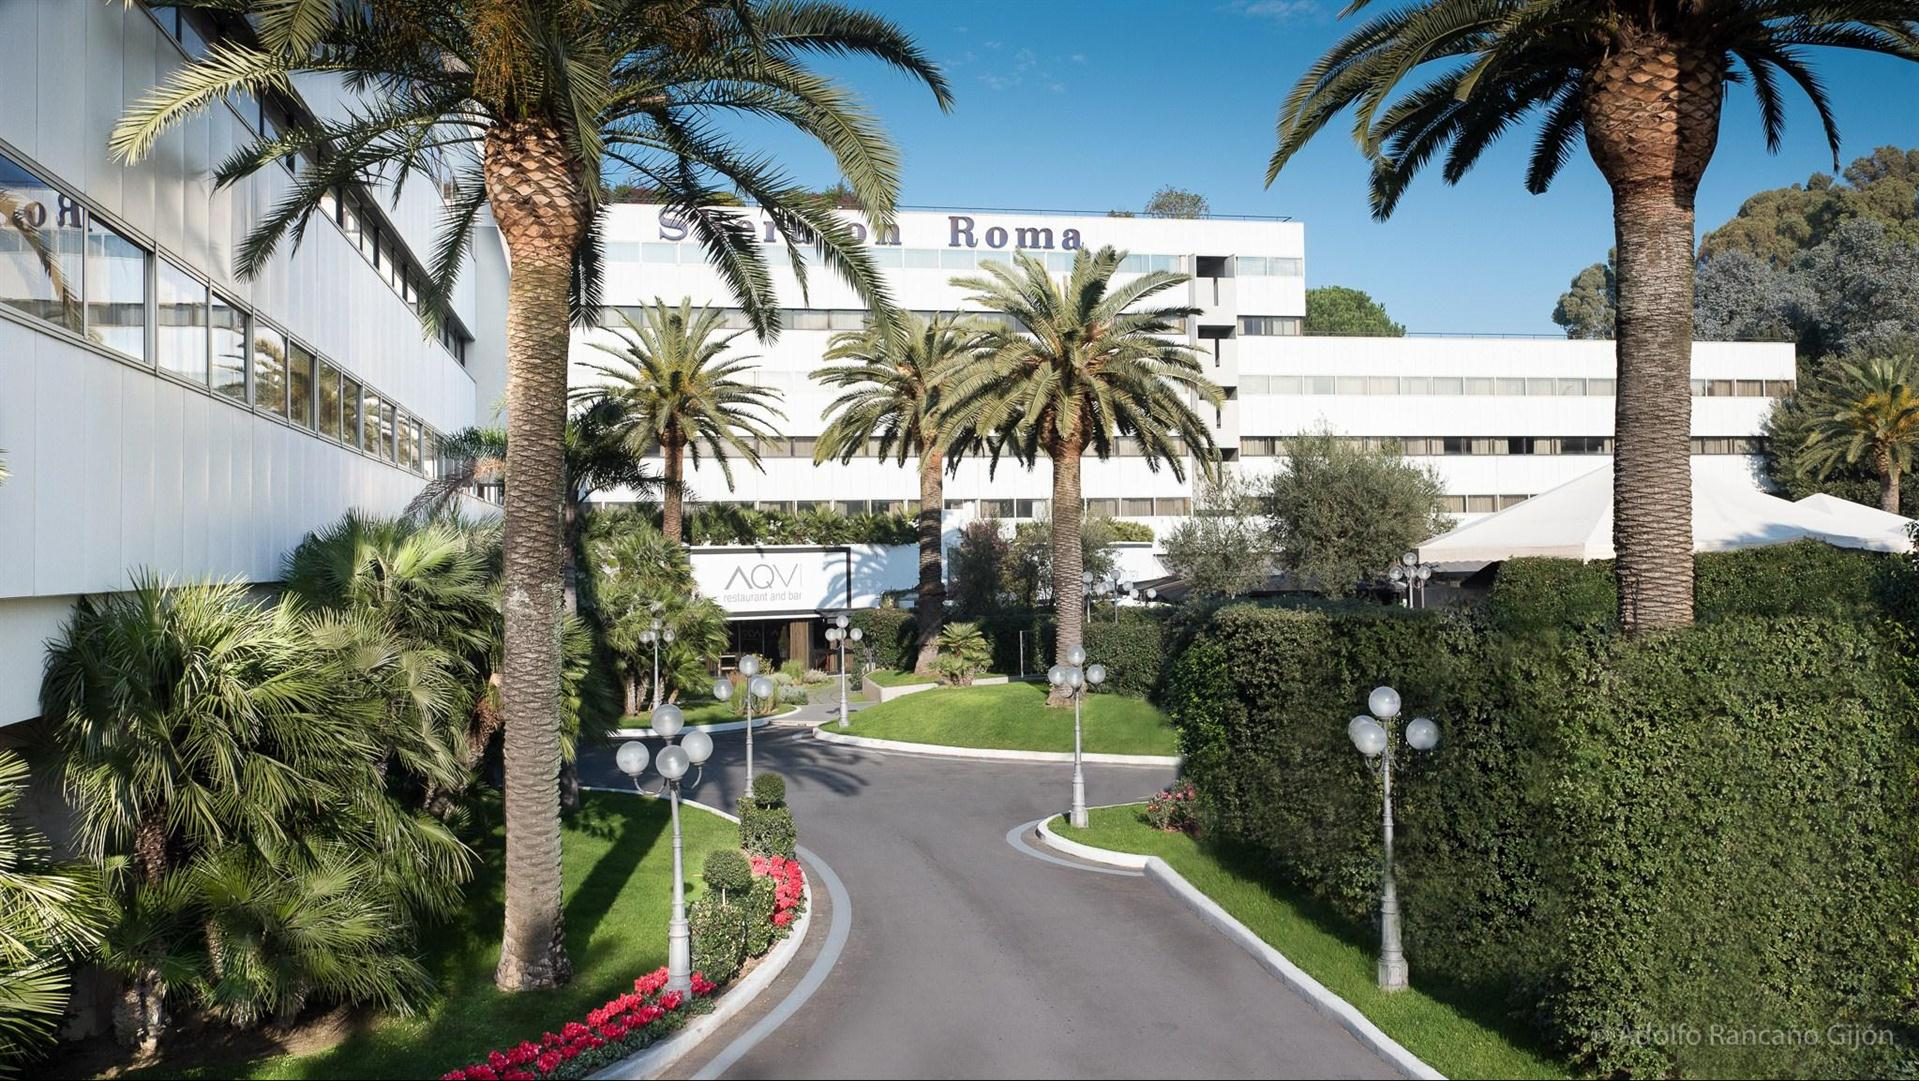 Meetings and Events at Sheraton Roma Hotel & Conference Center, Rome, IT